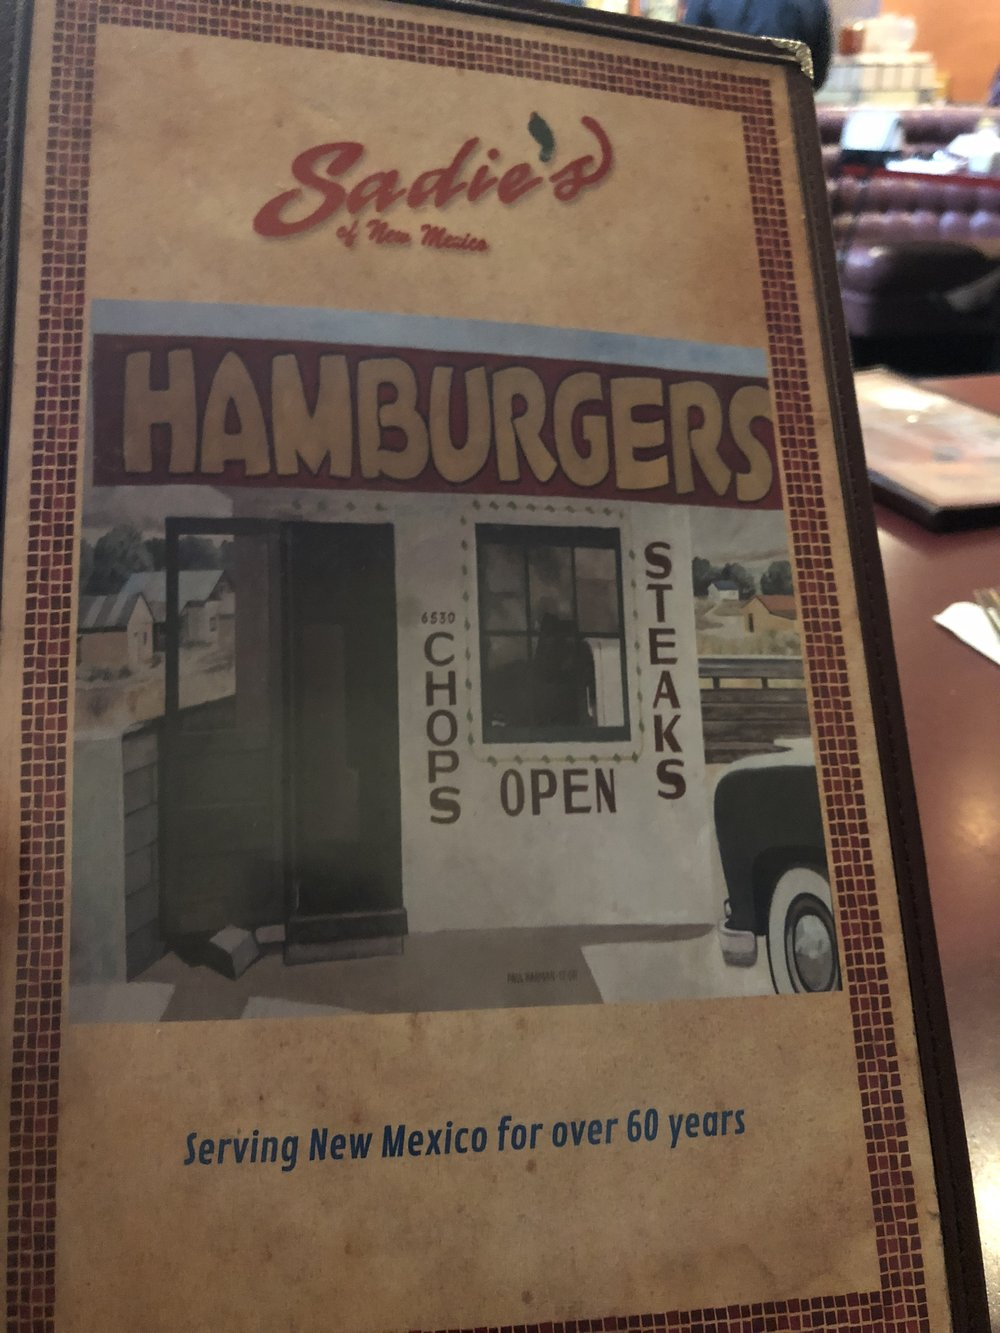 Sadie's, an Albuquerque institution